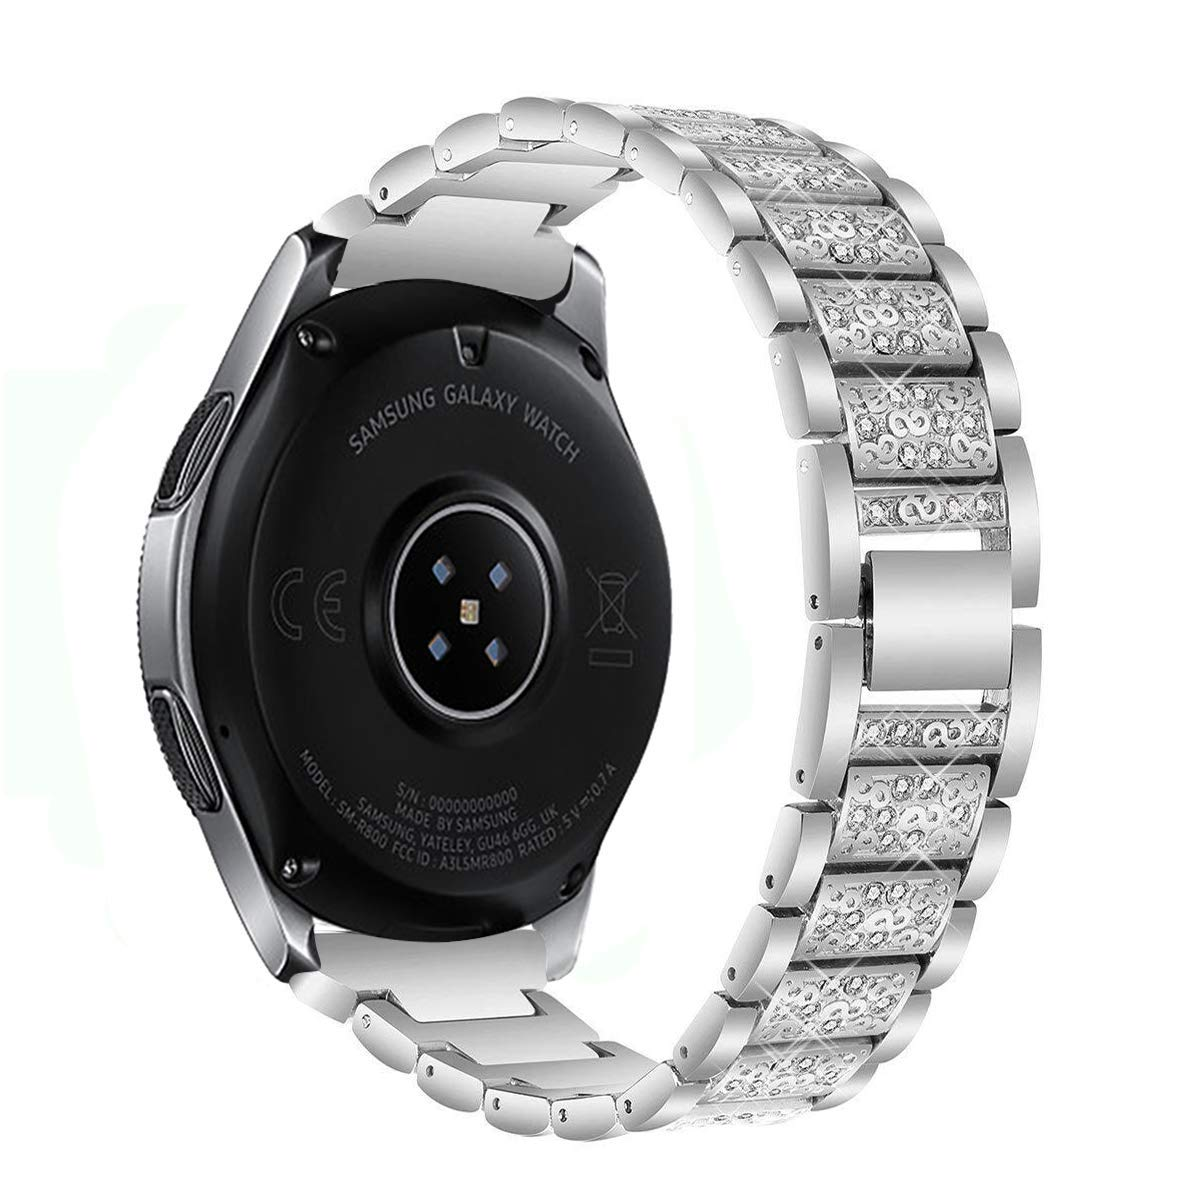 Kartice Compatible Samsung Galaxy Watch(46mm) Bands,22mm Galaxy Watch Band Alloy Crystal Rhinestone Diamon Replacement Bracelet Strap fit Samsung Galaxy Watch SM-800 Smart Watch(46mm).-Silver